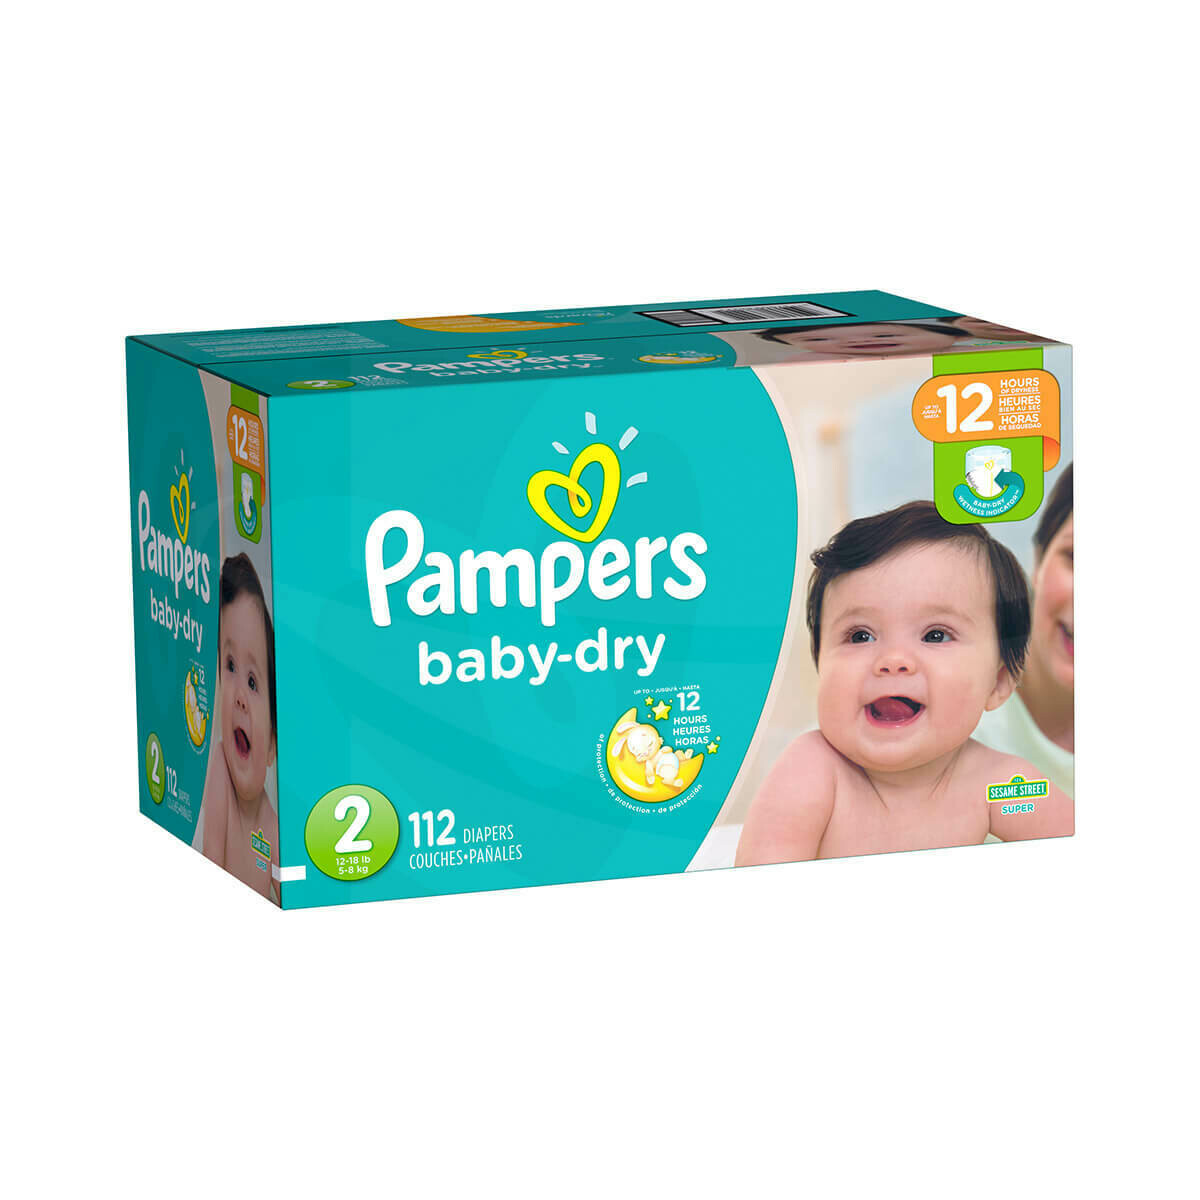 Pampers talla 2 (112 unidades)